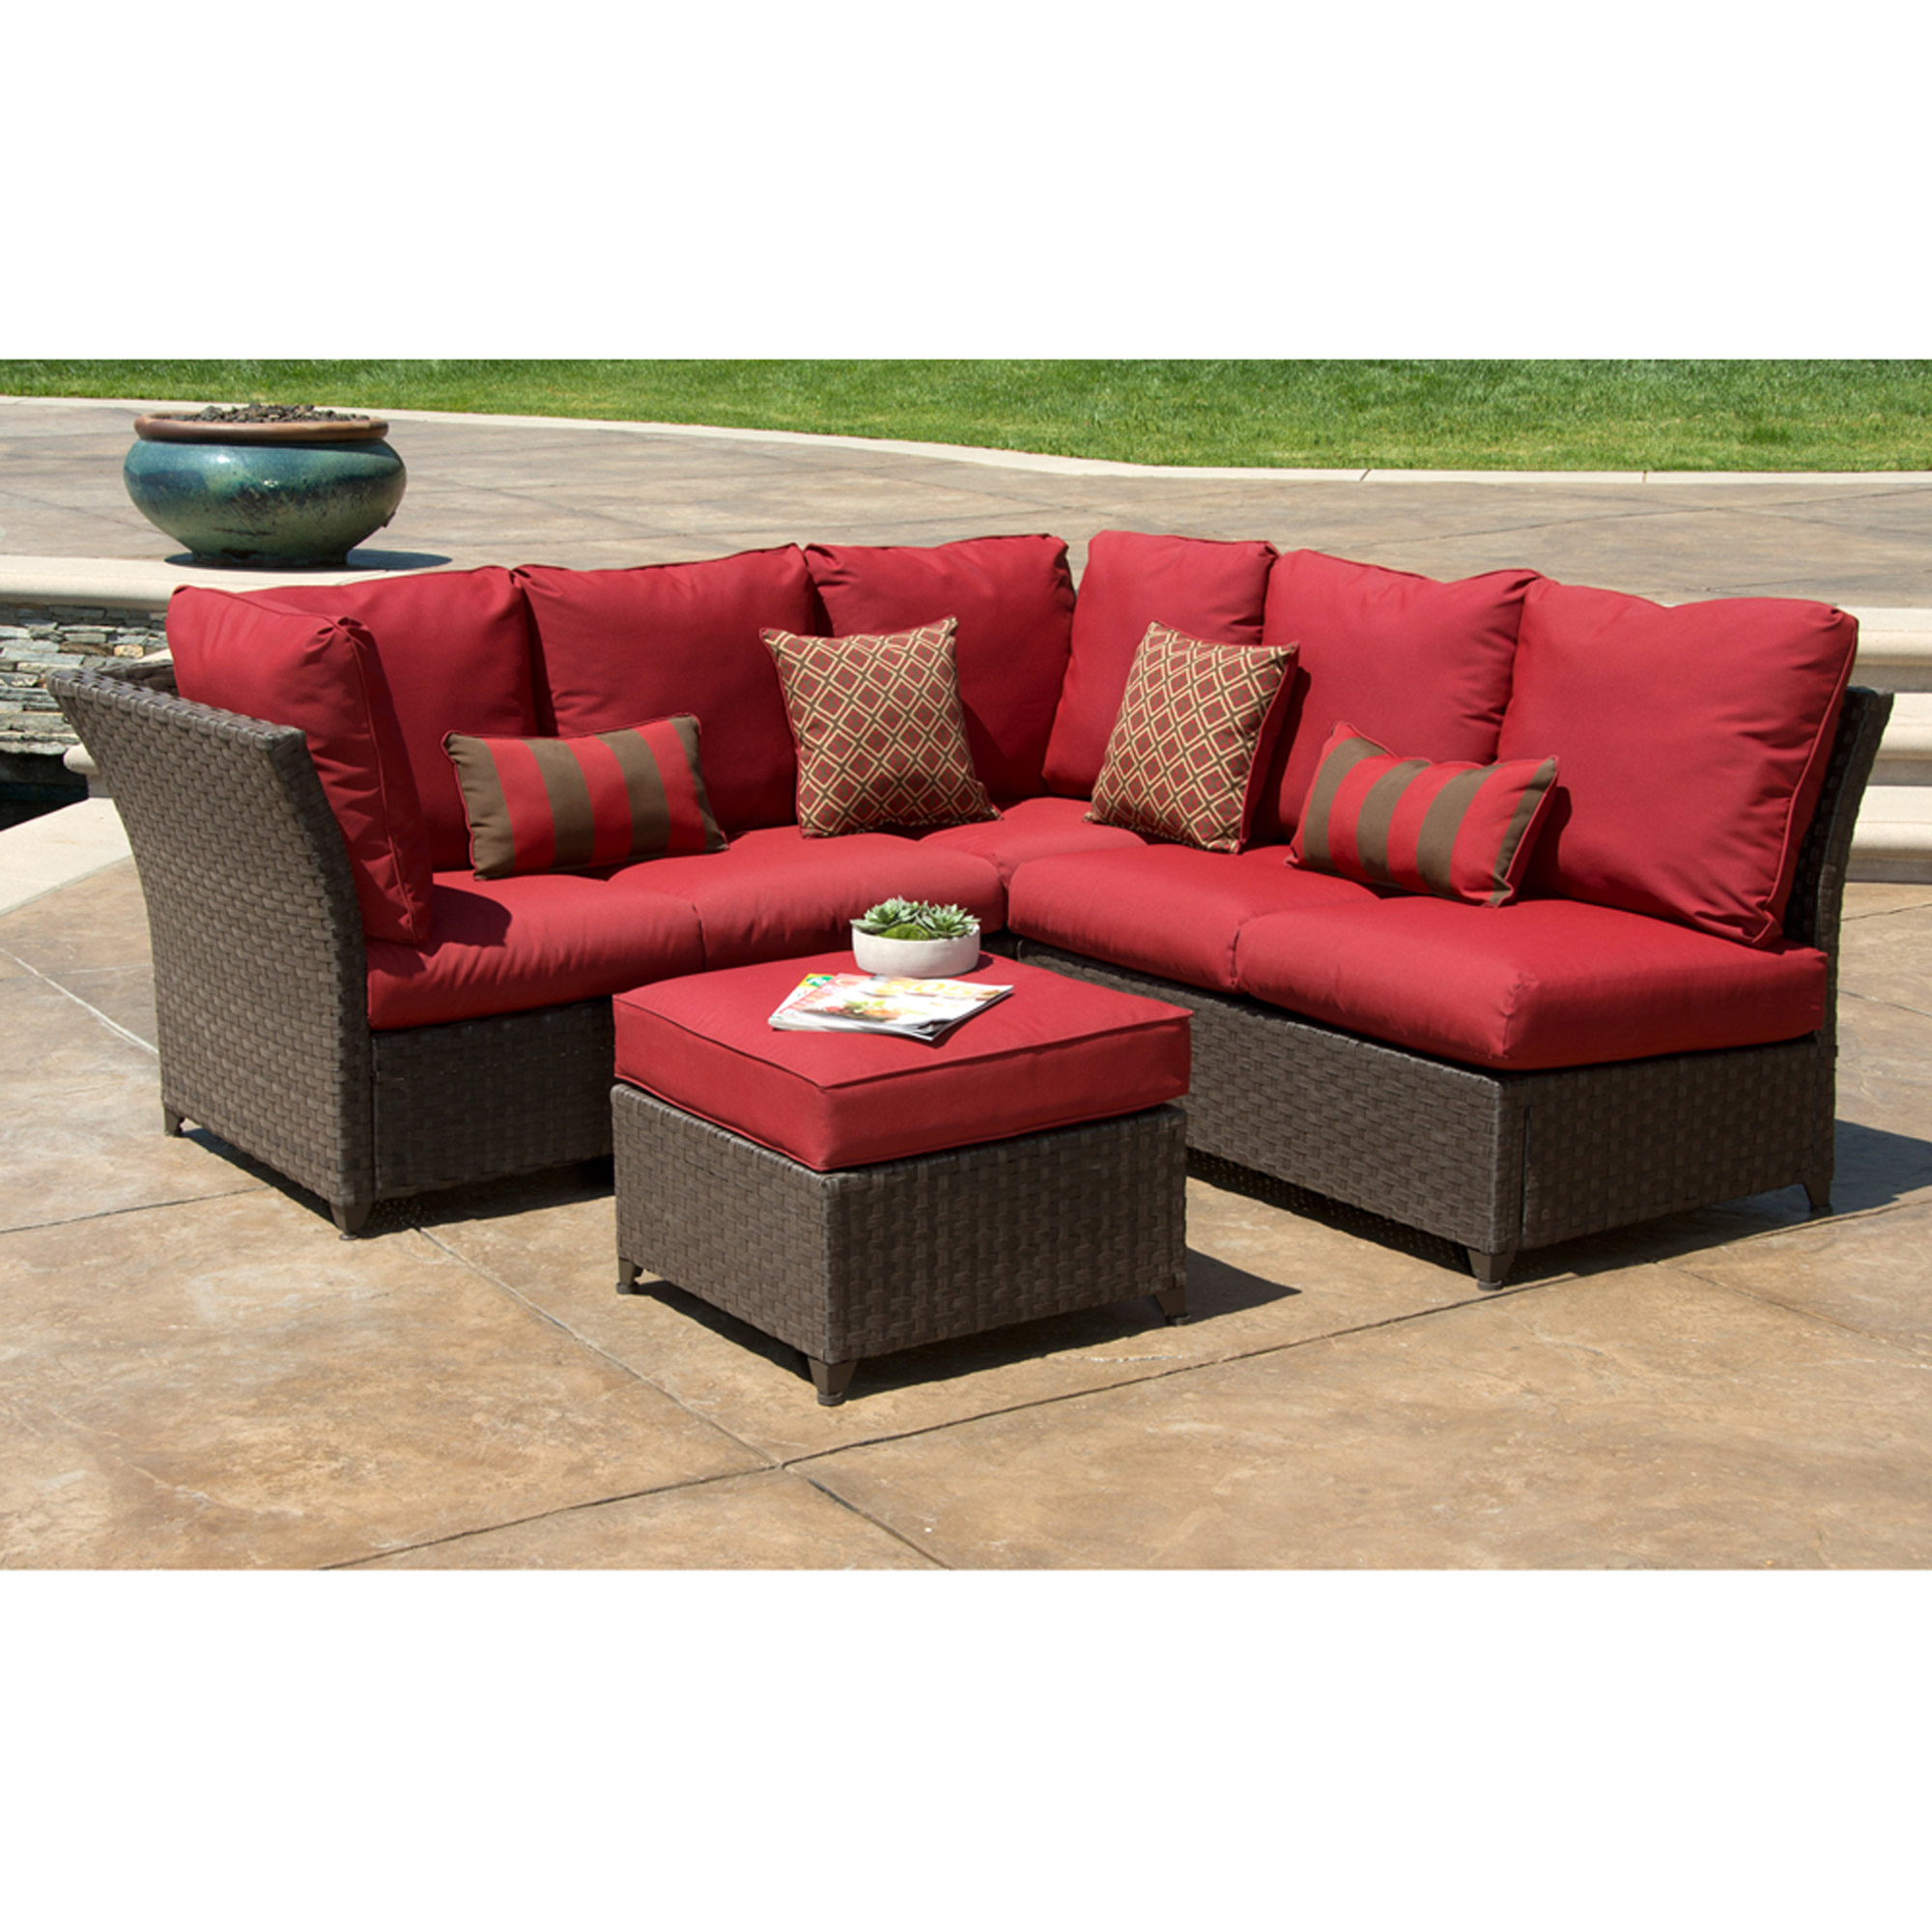 Better Homes And Gardens Rushreed 3 Piece Outdoor Sectional Sofa Set, Red,  Seats